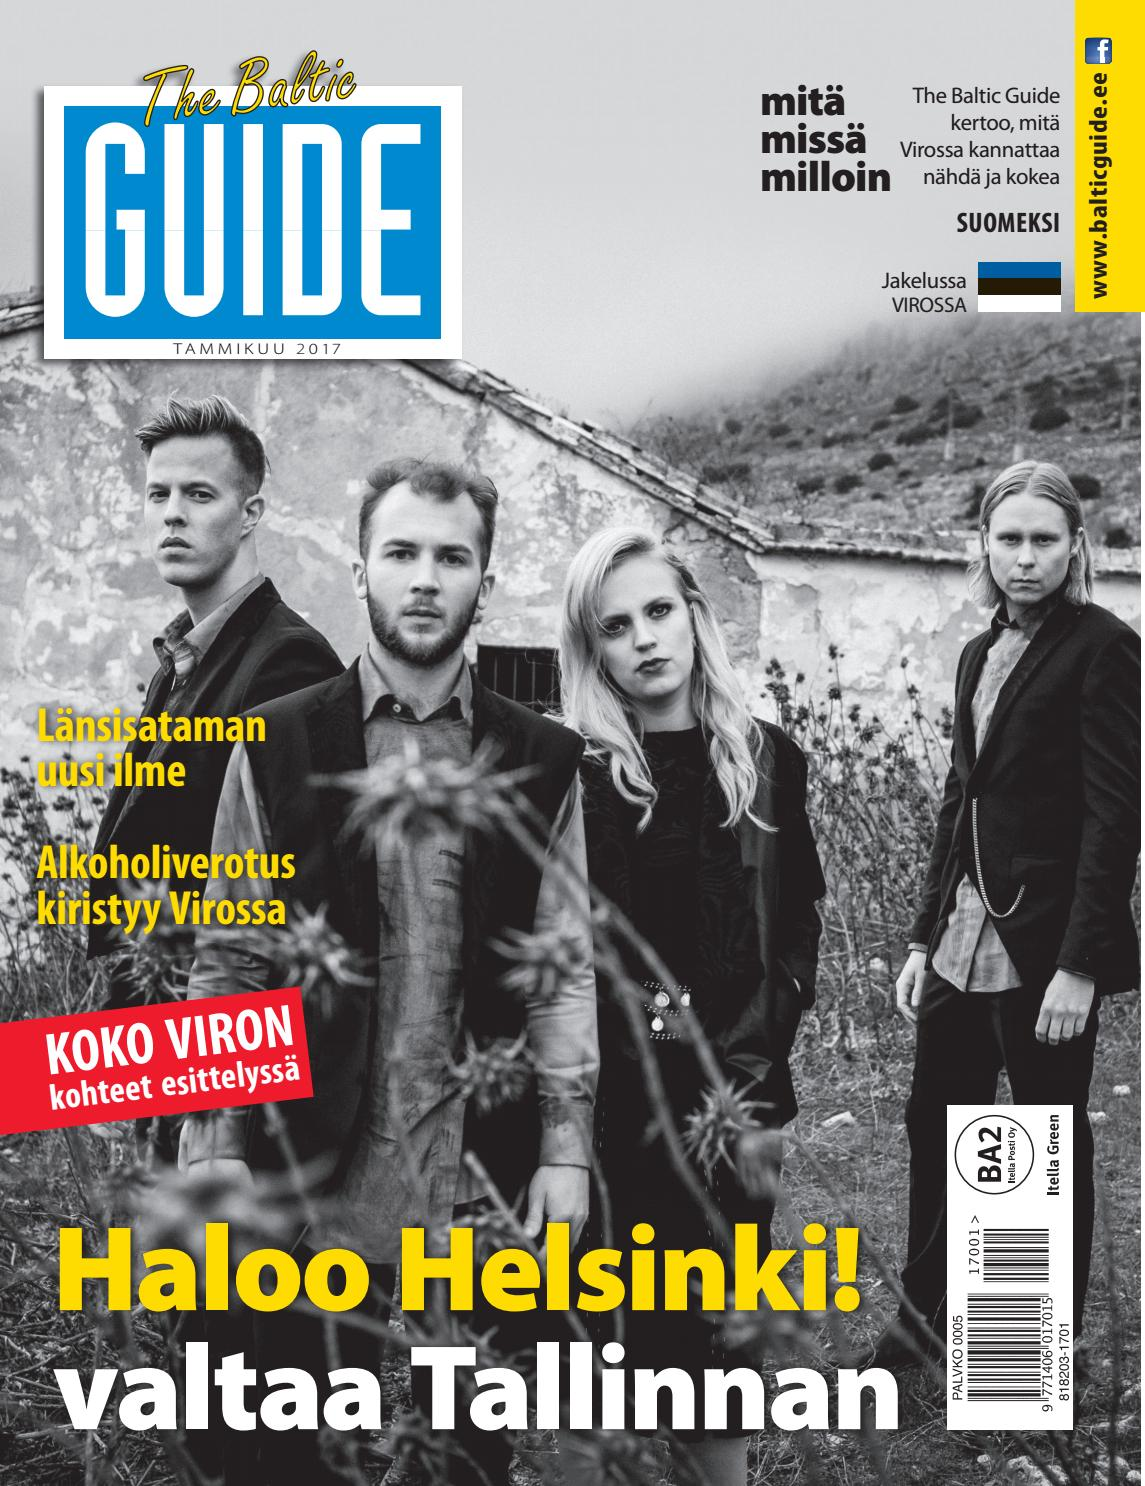 The Baltic Guide FIN Tammikuu 2017 by The Baltic Guide - issuu eb493cb998